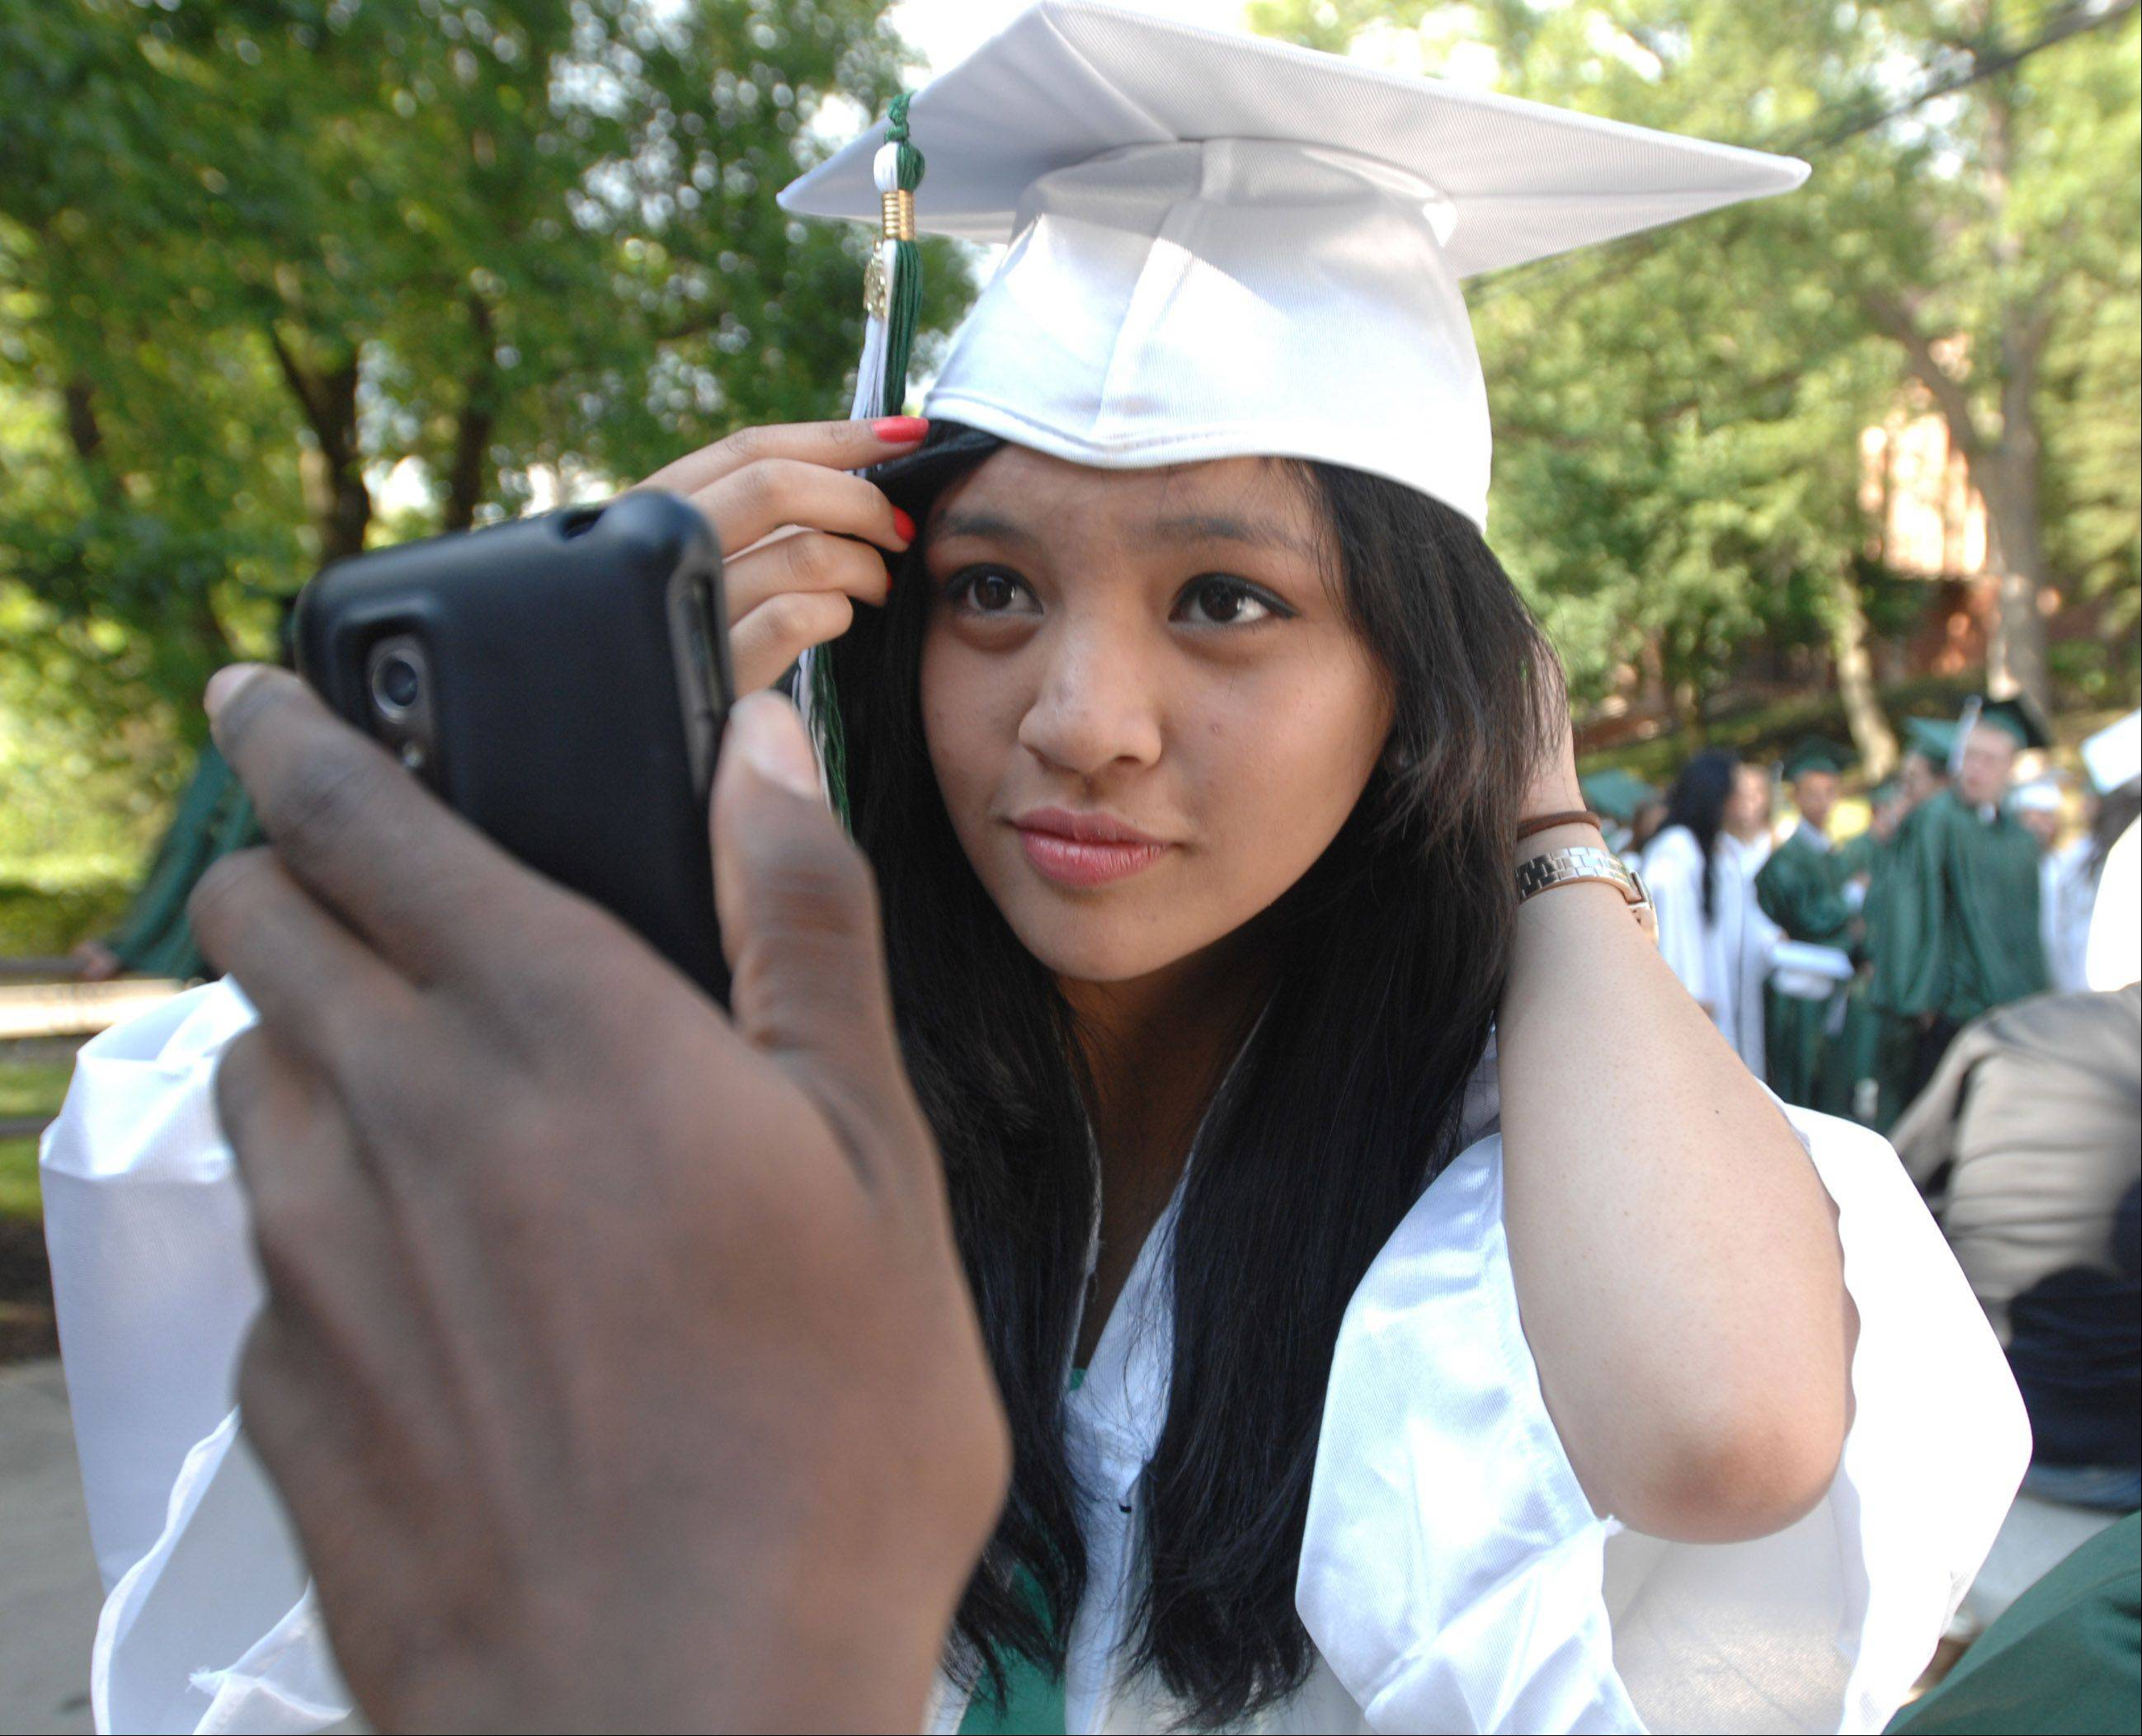 Nicole Celestino of Glendale Heights fixes her hair in a reflection from a cell phone just before the start of the Glenbard West graduation in Glen Ellyn Friday.